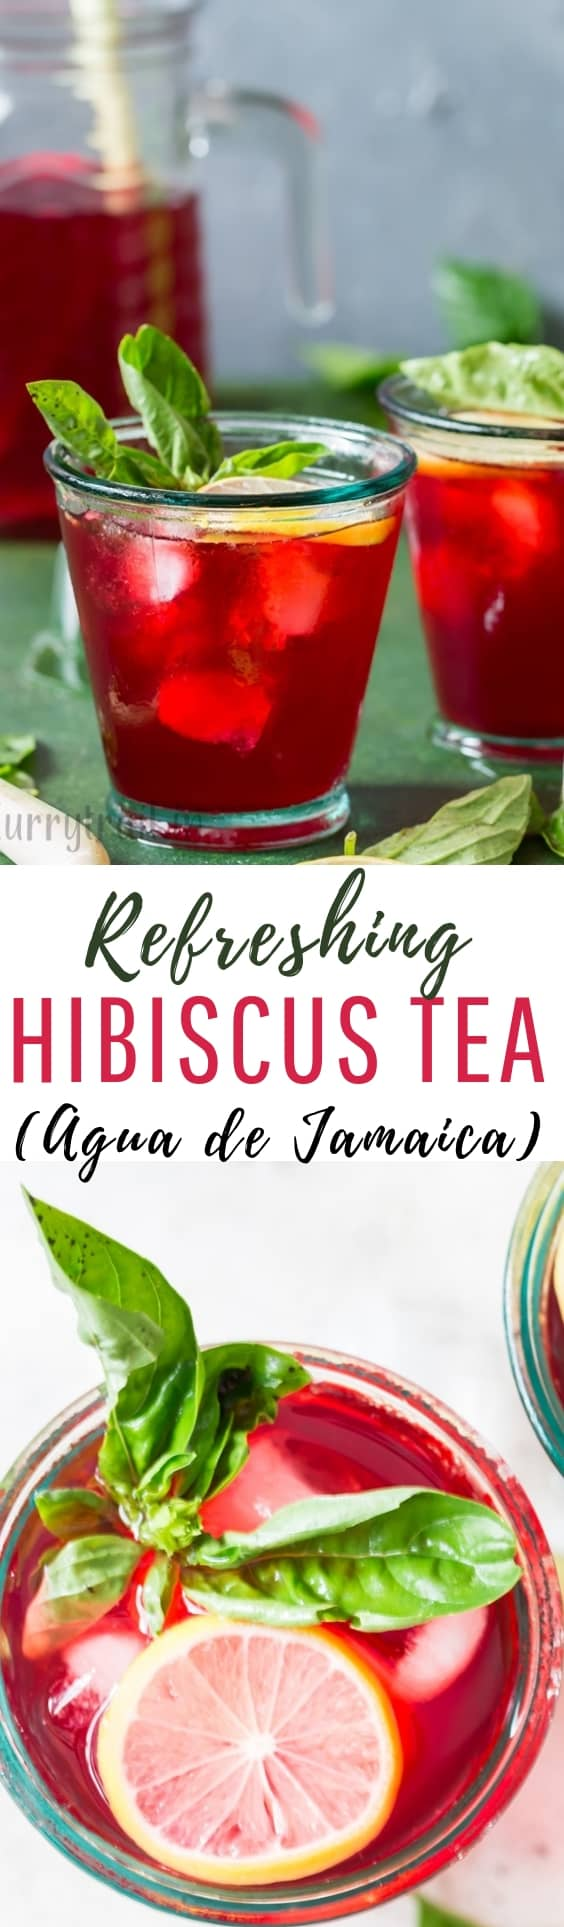 health benefits of hibiscus tea with text overlay